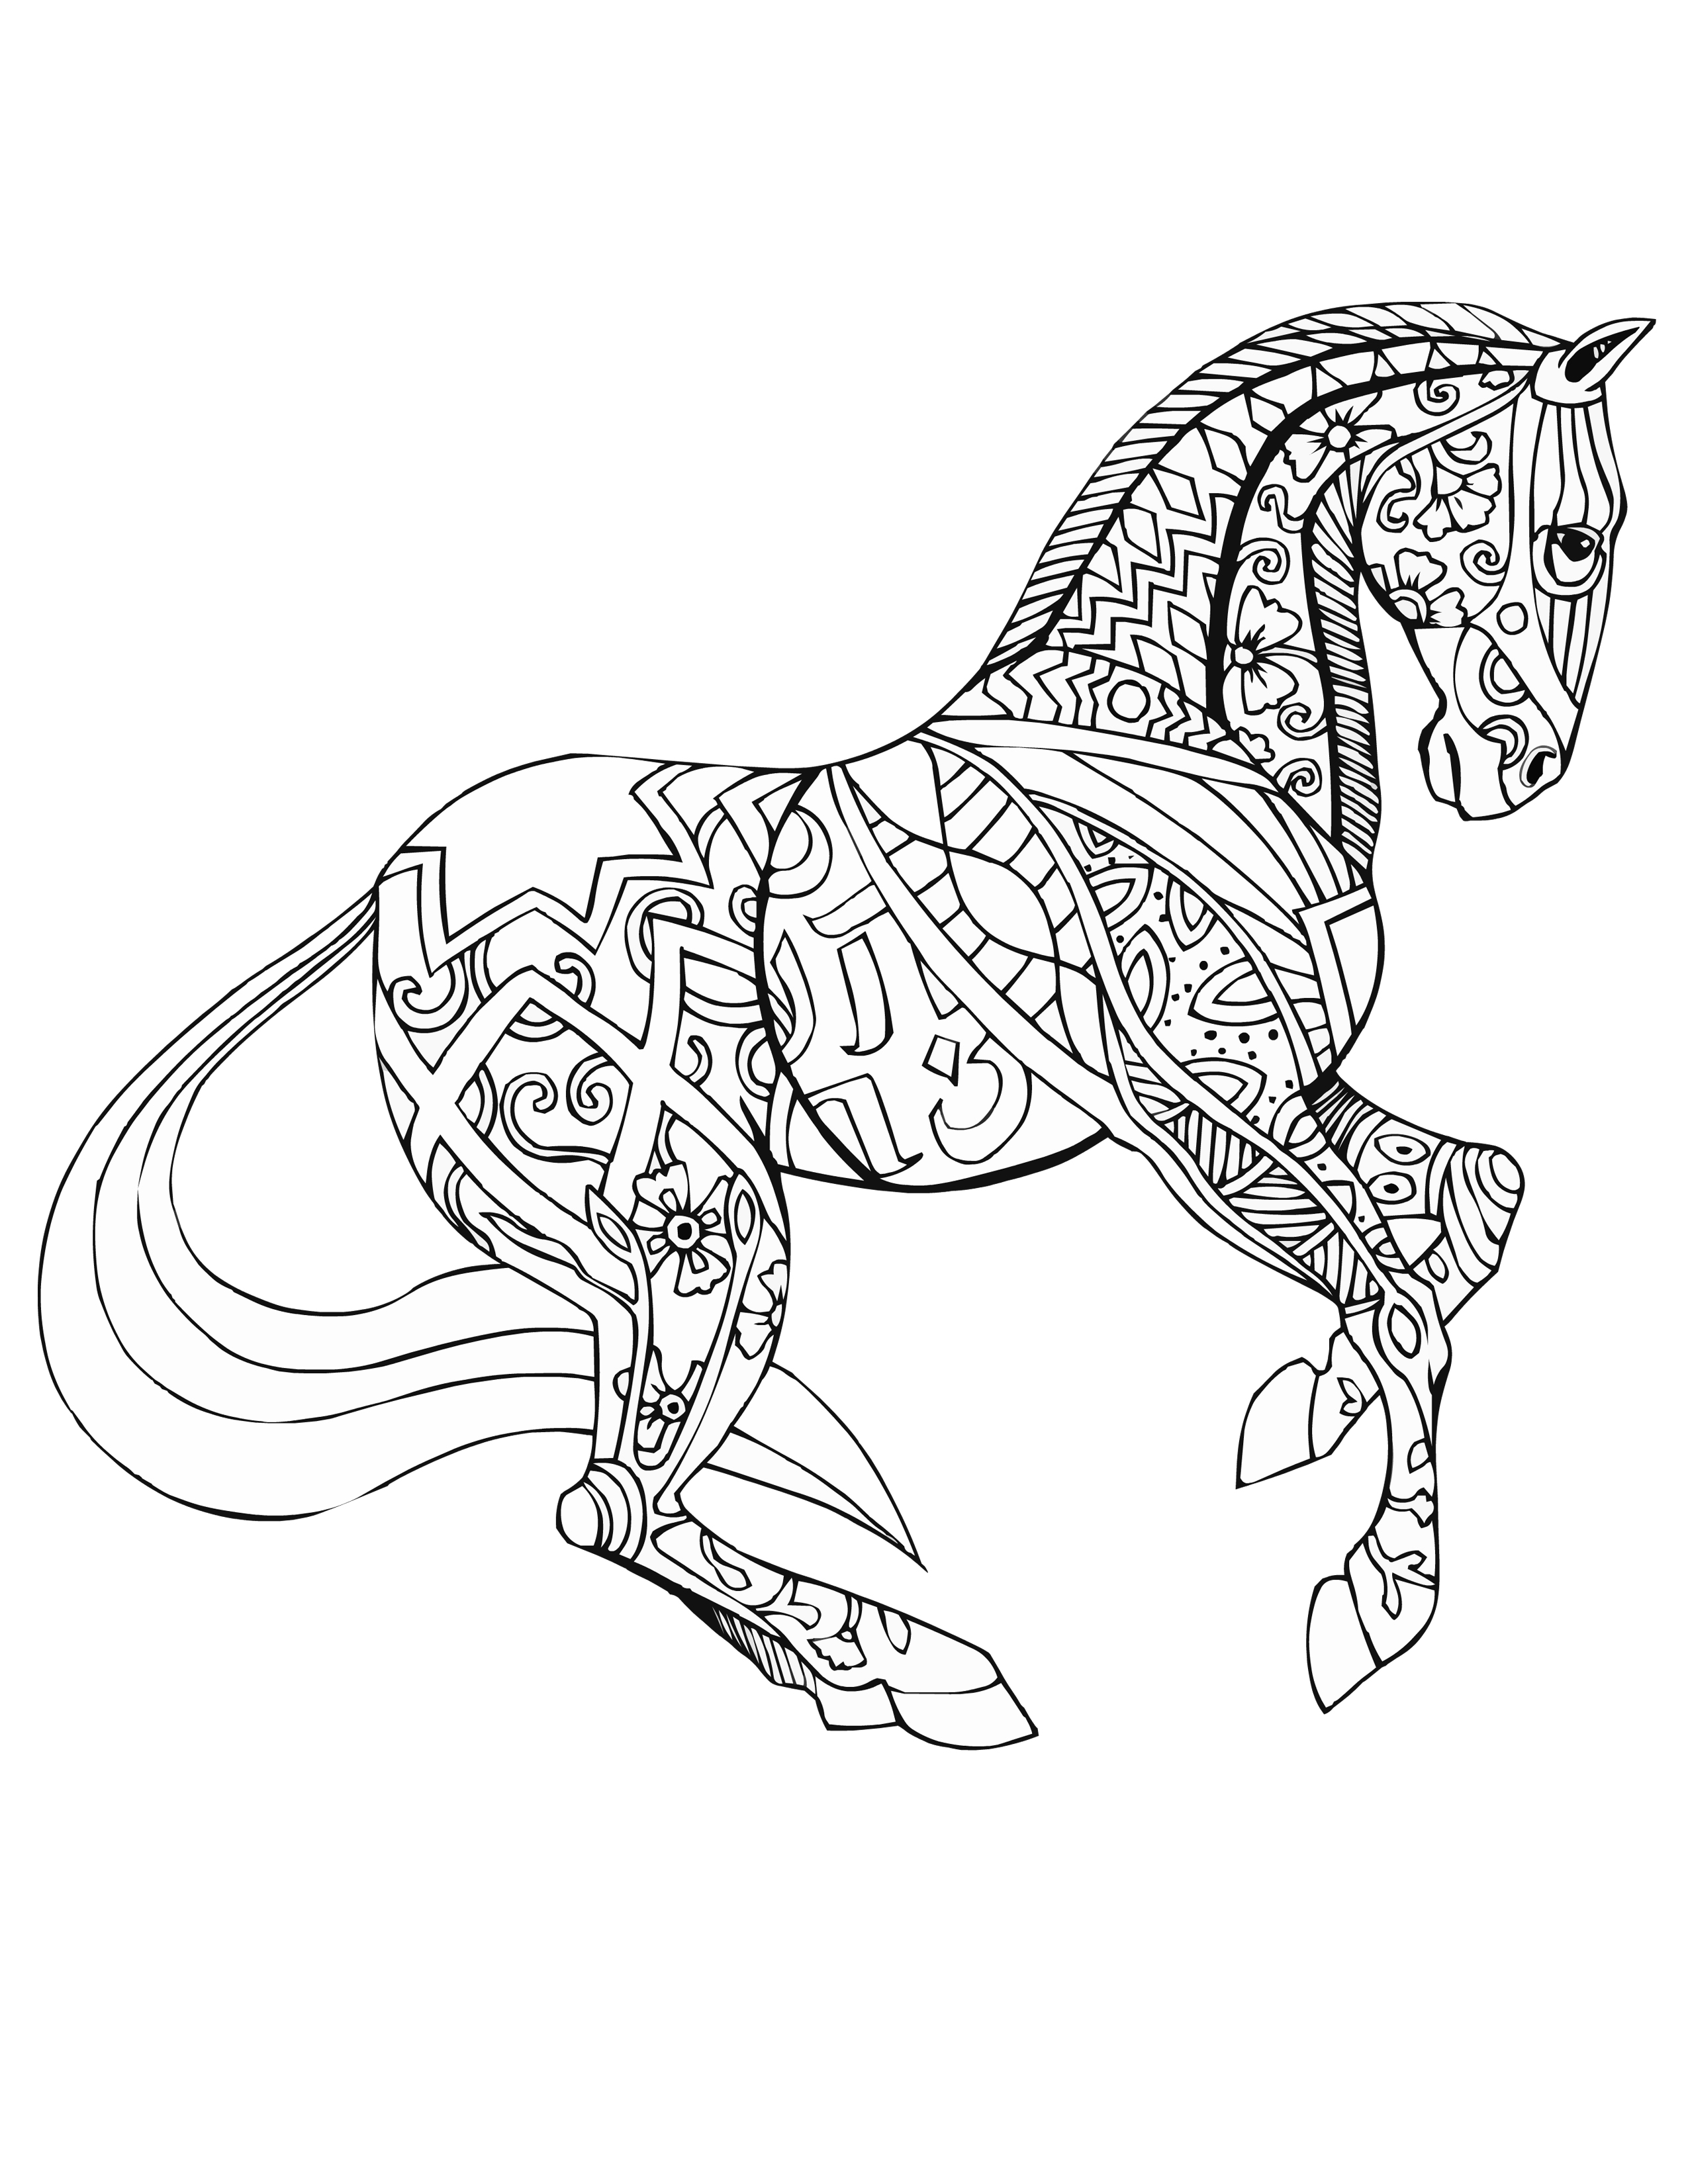 pictures of horses to colour in free horse coloring pages to in colour of horses pictures